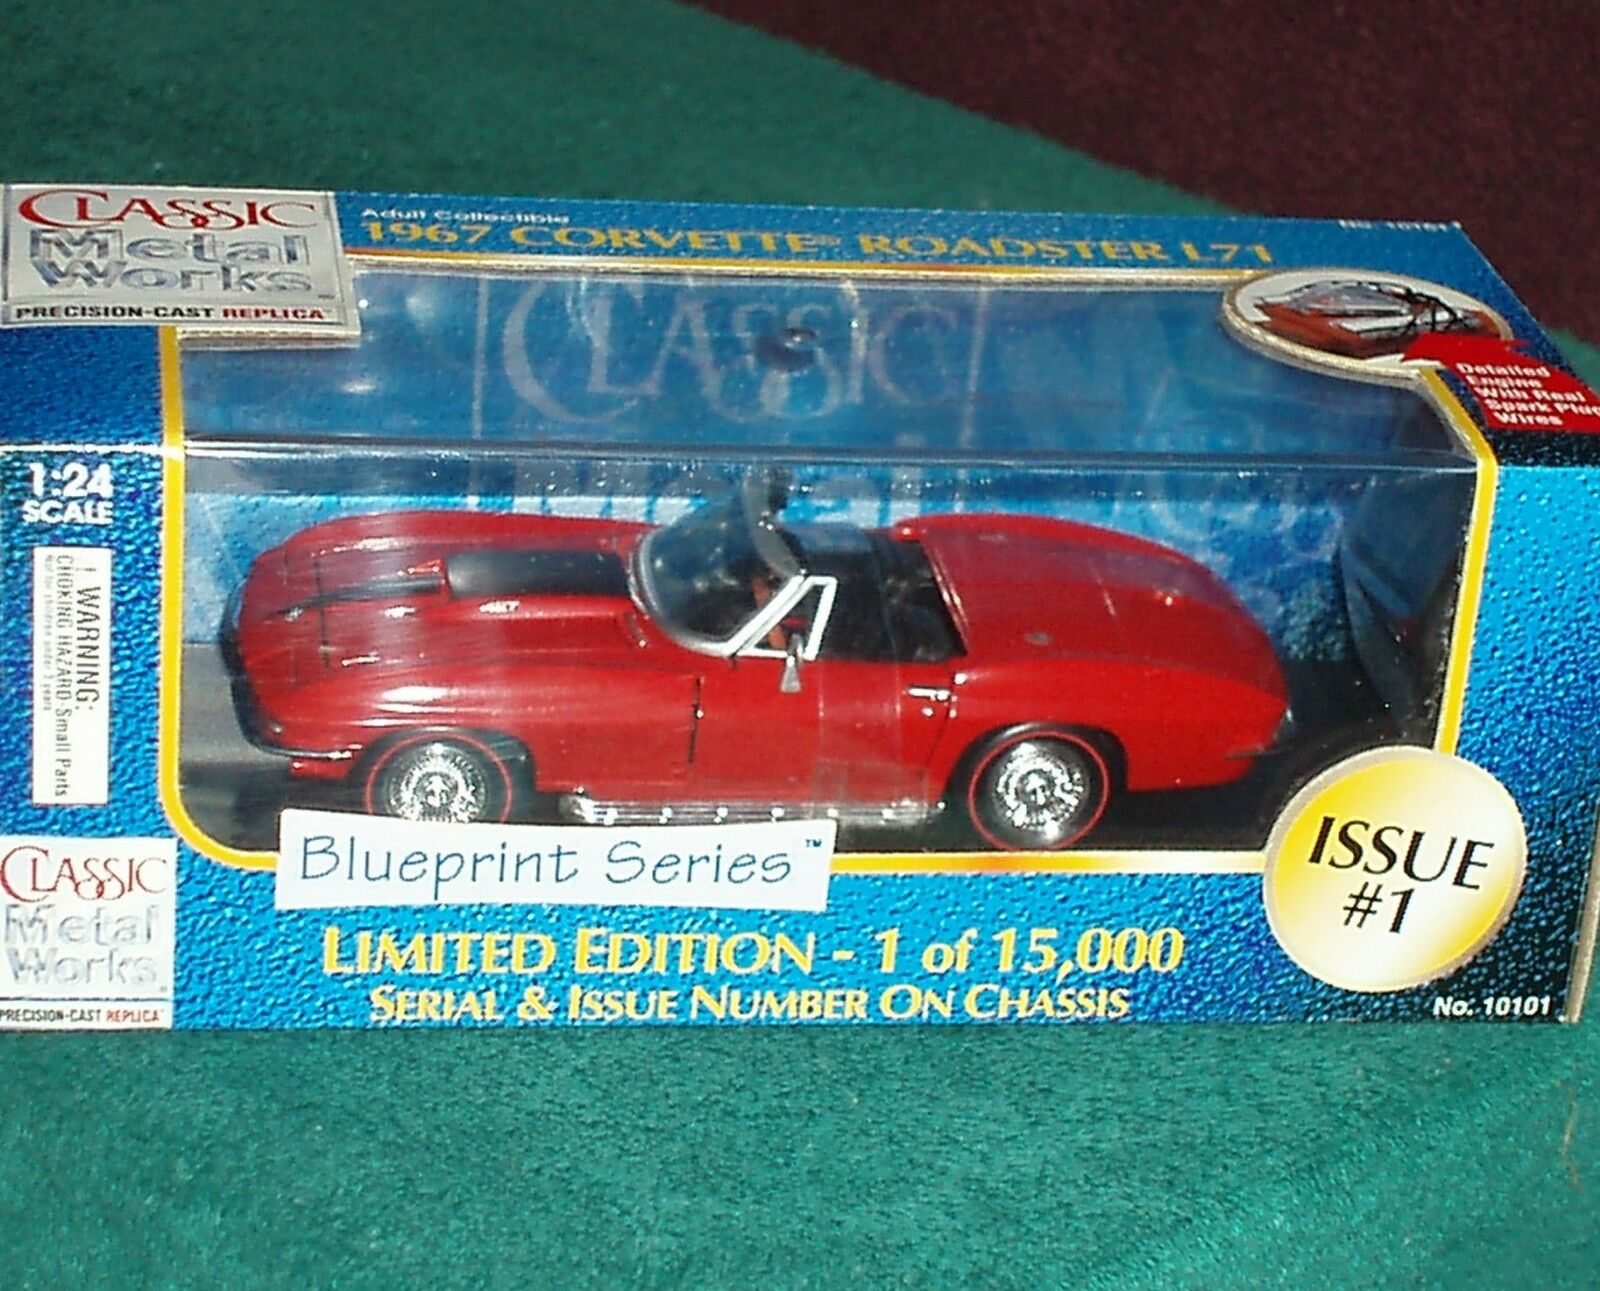 CLASSIC METAL WORKS 1967 CHEVY CORVETTE ROADSTER w DISPLAY CASE 1 24 RED